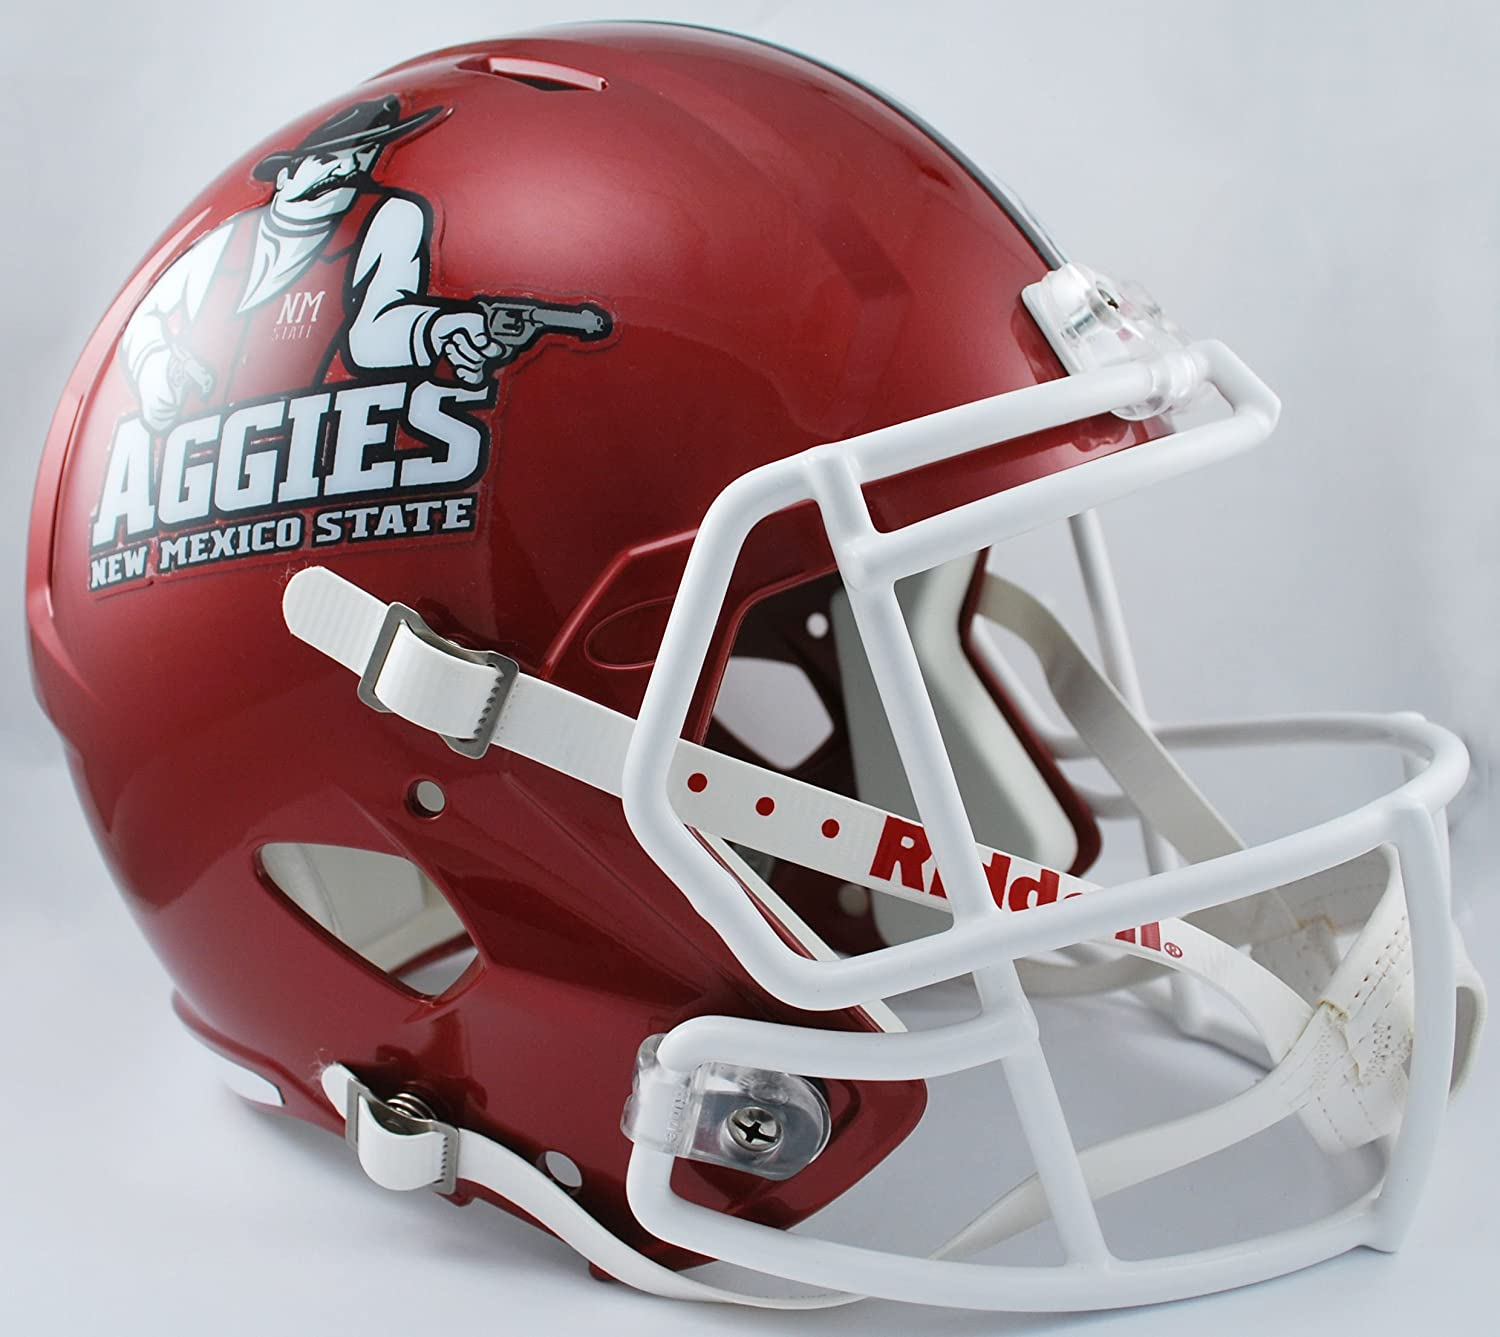 NCAA New Mexico State Aggies Full Size Speed Replica Helmet Red Medium